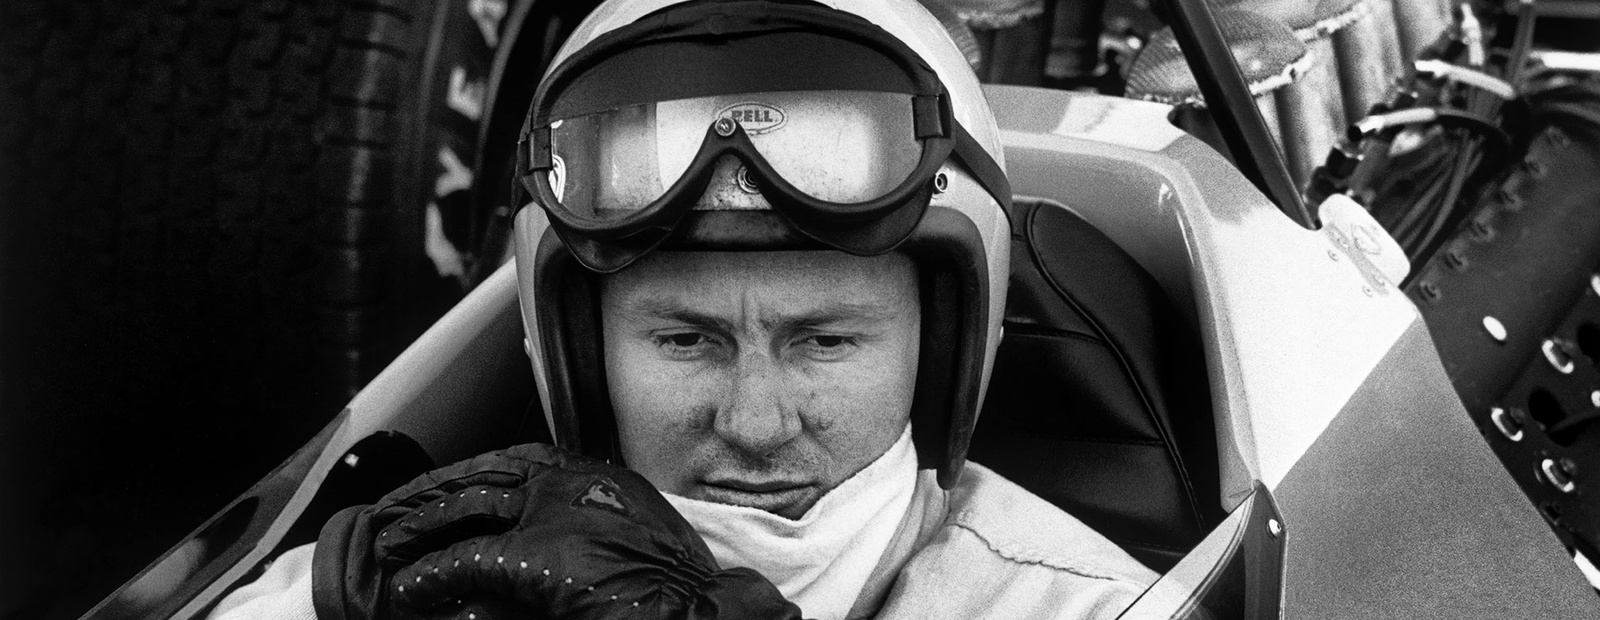 mclaren formula 1 - bruce's death: courage in the face of adversity